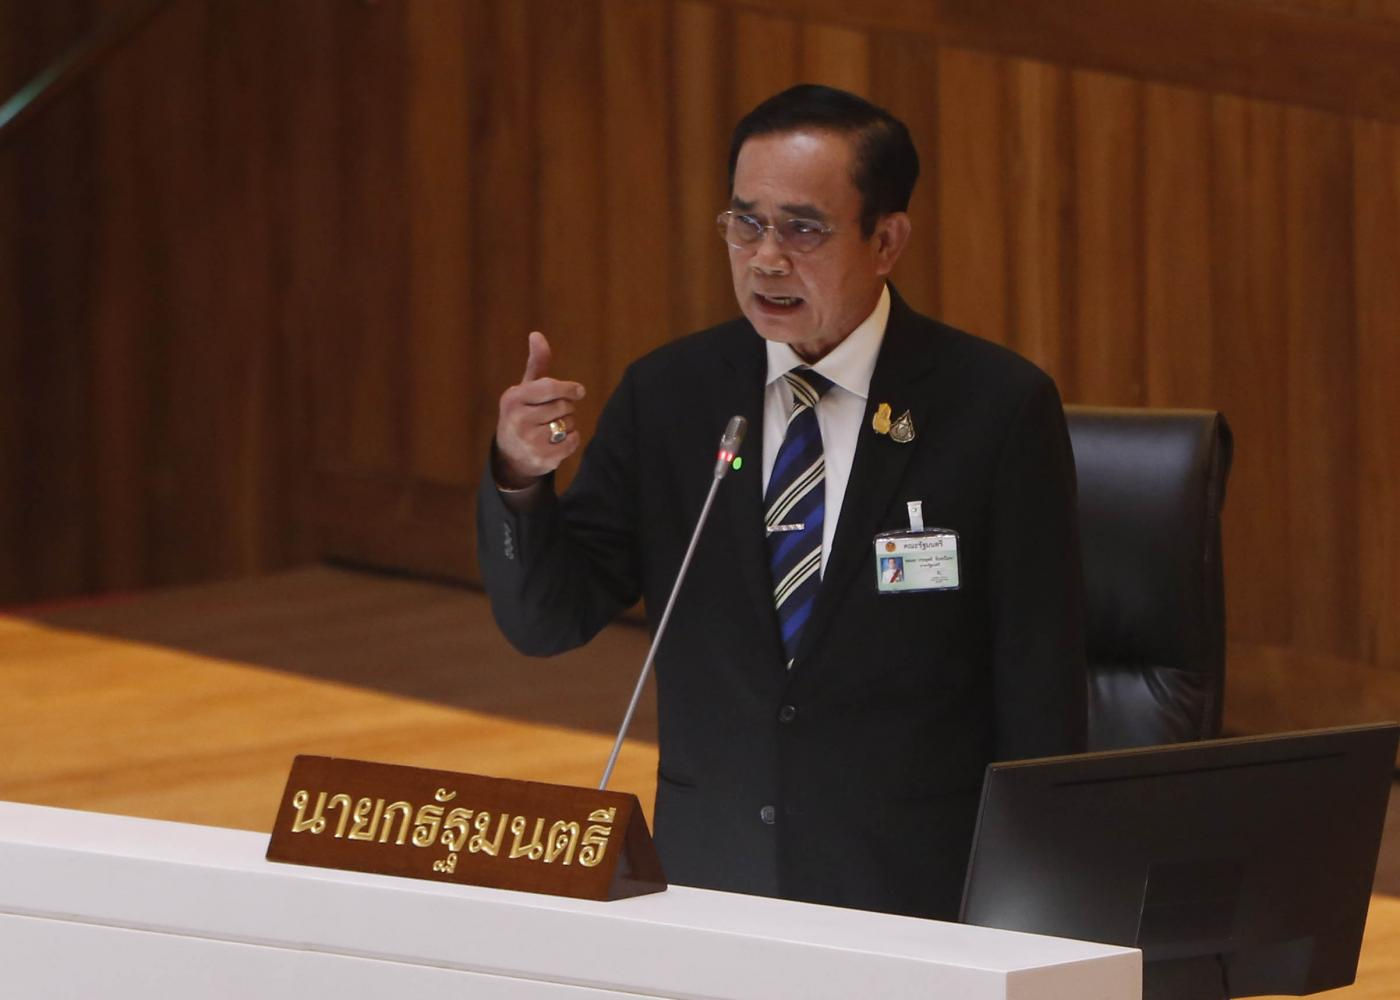 Prime Minister Prayut Chan-o-cha addressing a meeting of the House of Representatives on Wednesday, the first day of a debate on the government's three executive decrees on Covid-19 borrowing. The picture at left shows members of parliament in face masks standing up and keeping sufficient space from one another during the meeting. (Photo by Chanat Katanyu)